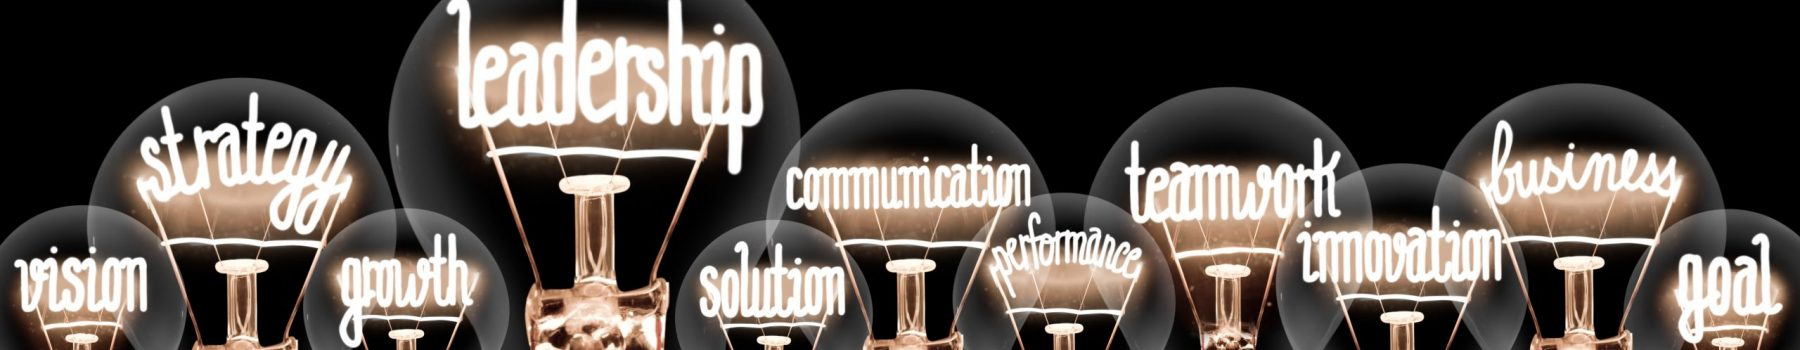 Group of light bulbs group with shining fibers in a shape of Leadership, Strategy, Teamwork and Solution concept related words isolated on black background